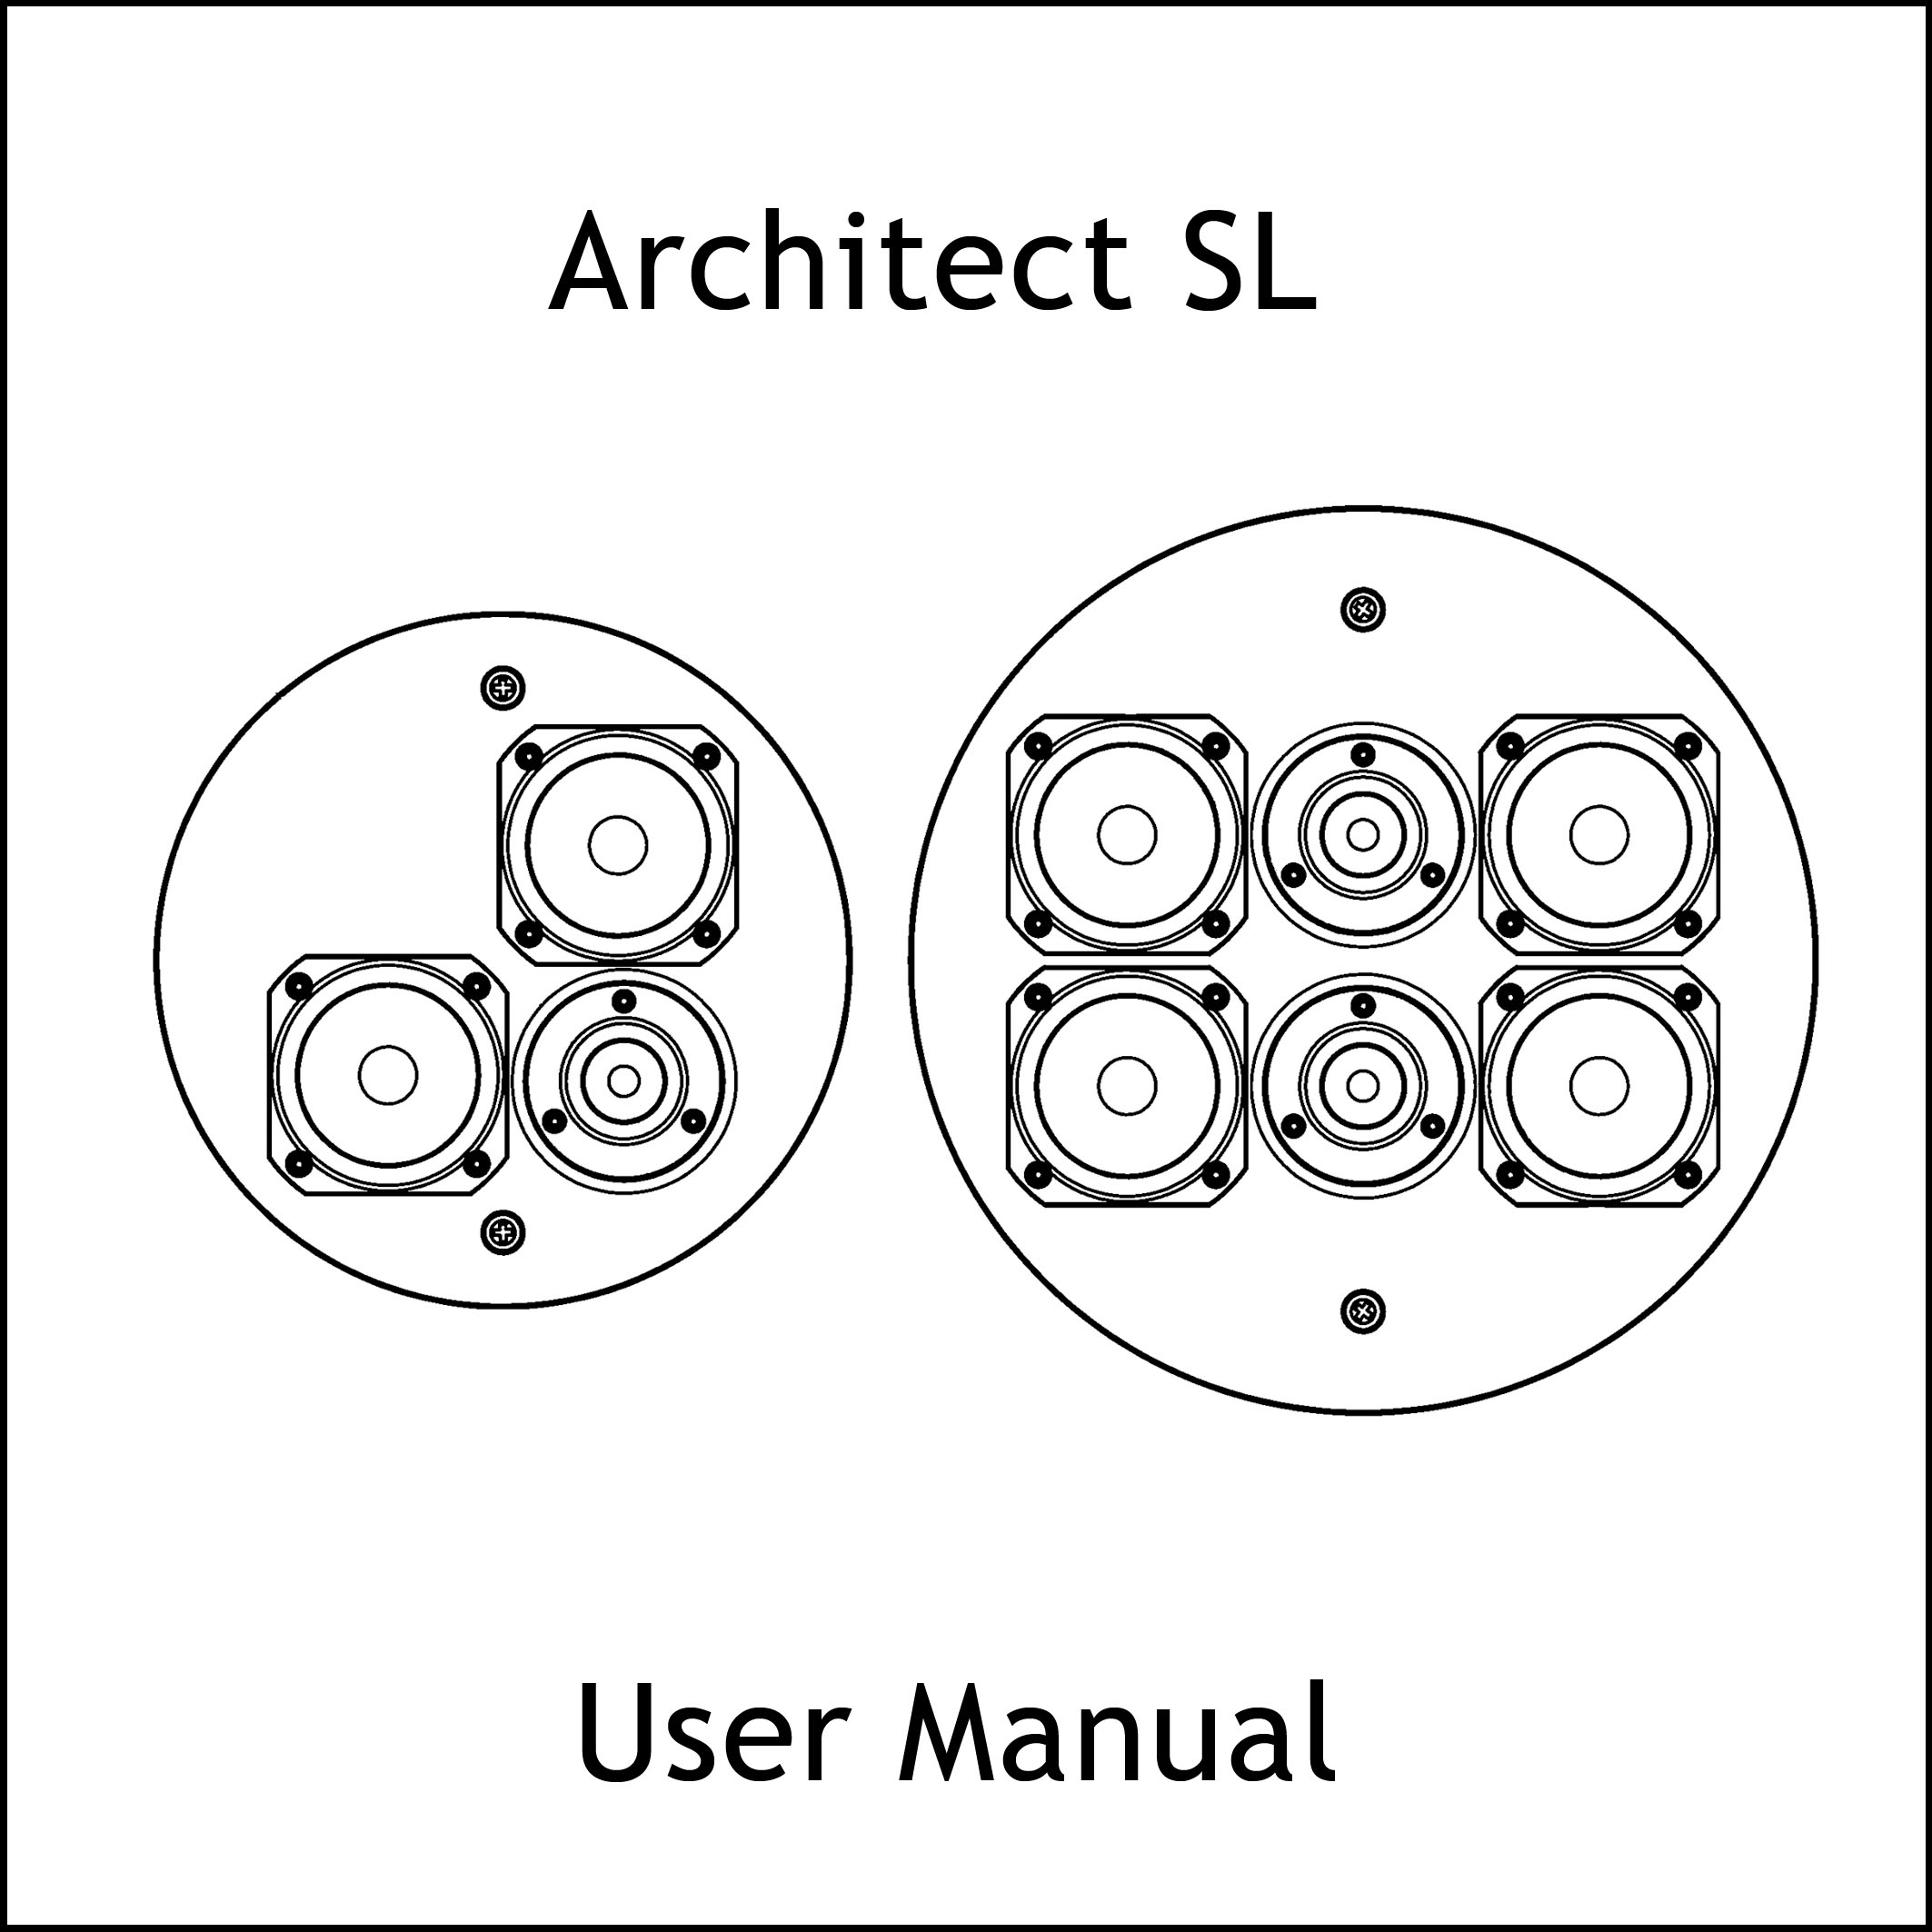 Getusermanual array architect 4 2 sl u2014 artcoustic loudspeakers rh artcoustic